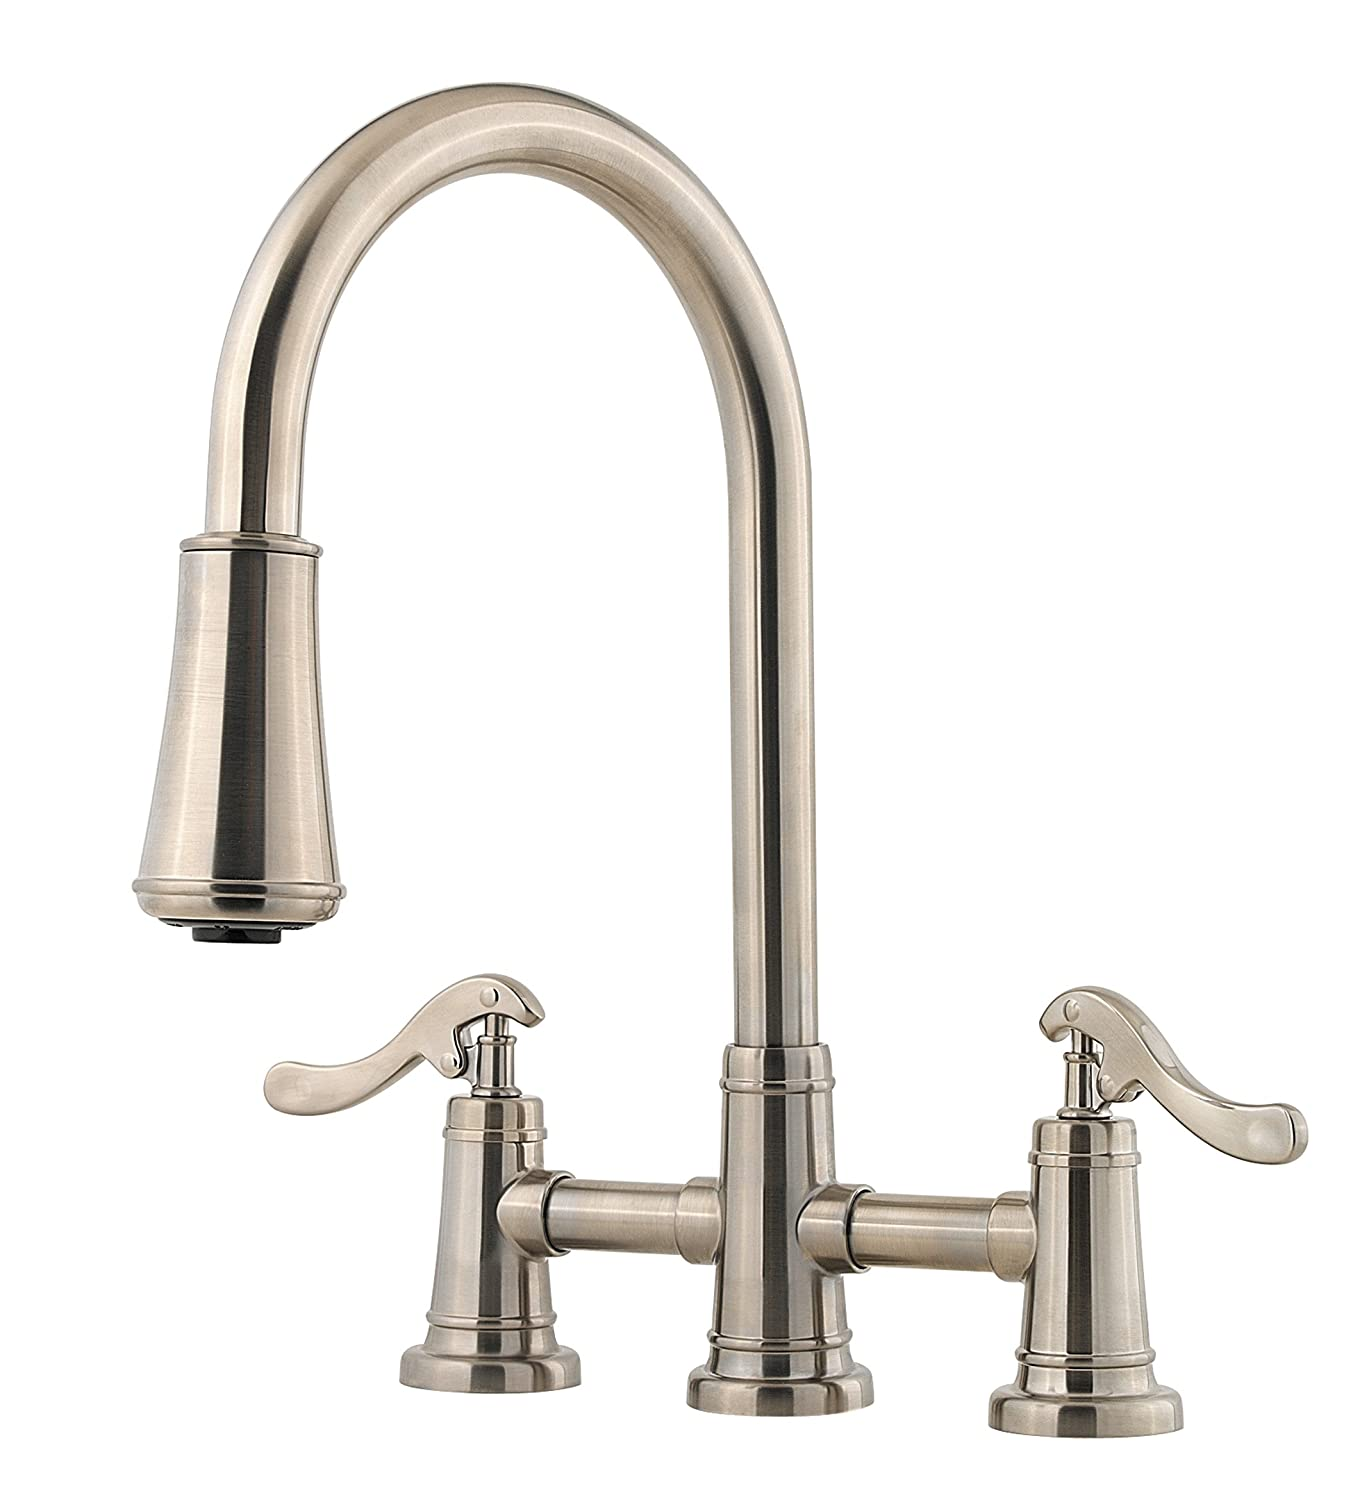 Pfister lg531ypk ashfield 2 handle pull down kitchen faucet in brushed nickel 1 8 gpm amazon com